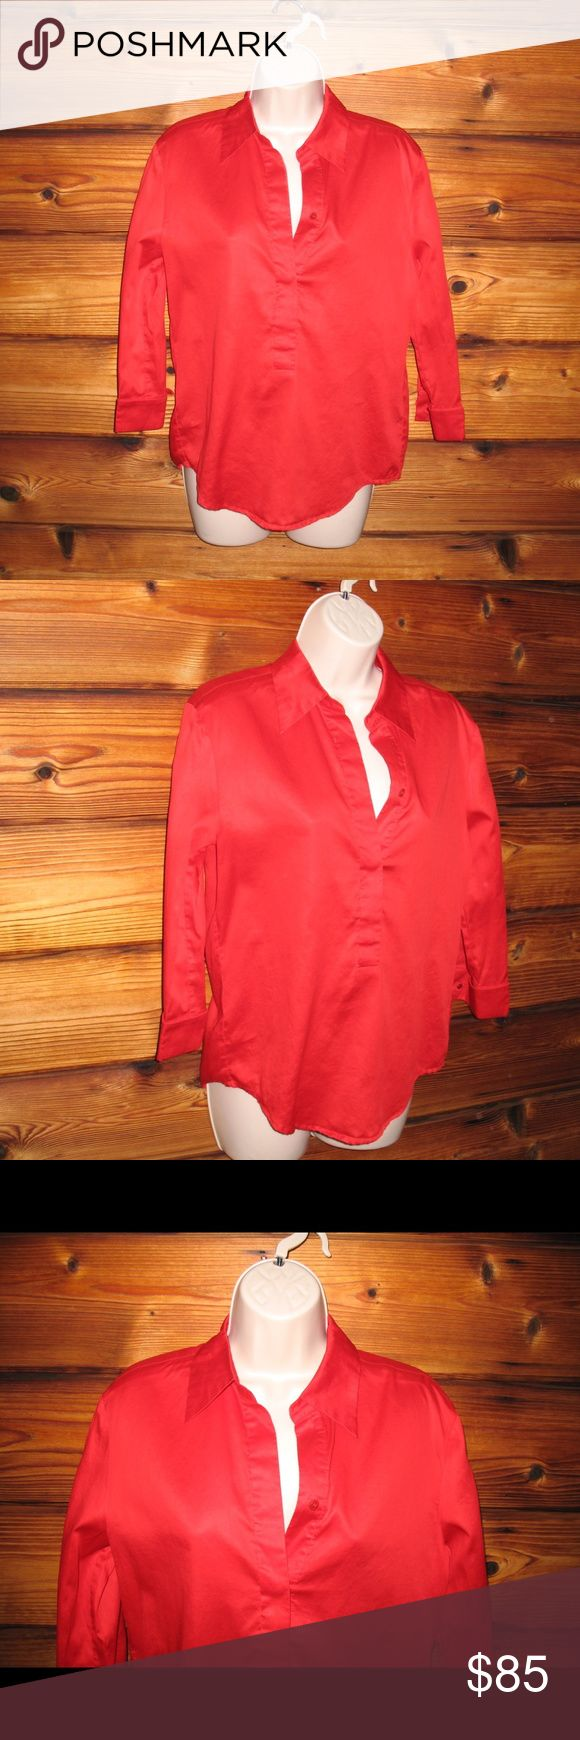 "Escada Sport Popover Sateen Cotton Blouse Top Escada Sport Popover 3/4 Sleeves Sateen Cotton Blouse Top, Size 34 Small  *Excellent condition. No stains, holes or other imperfections.  Details:   Escada Sport Size: 34/small Color: Red Style: Popover 100% Cotton Machine Wash  Measurements: Length: 24"" Bust: 38"" Waist: 36"" Escada Tops Blouses"